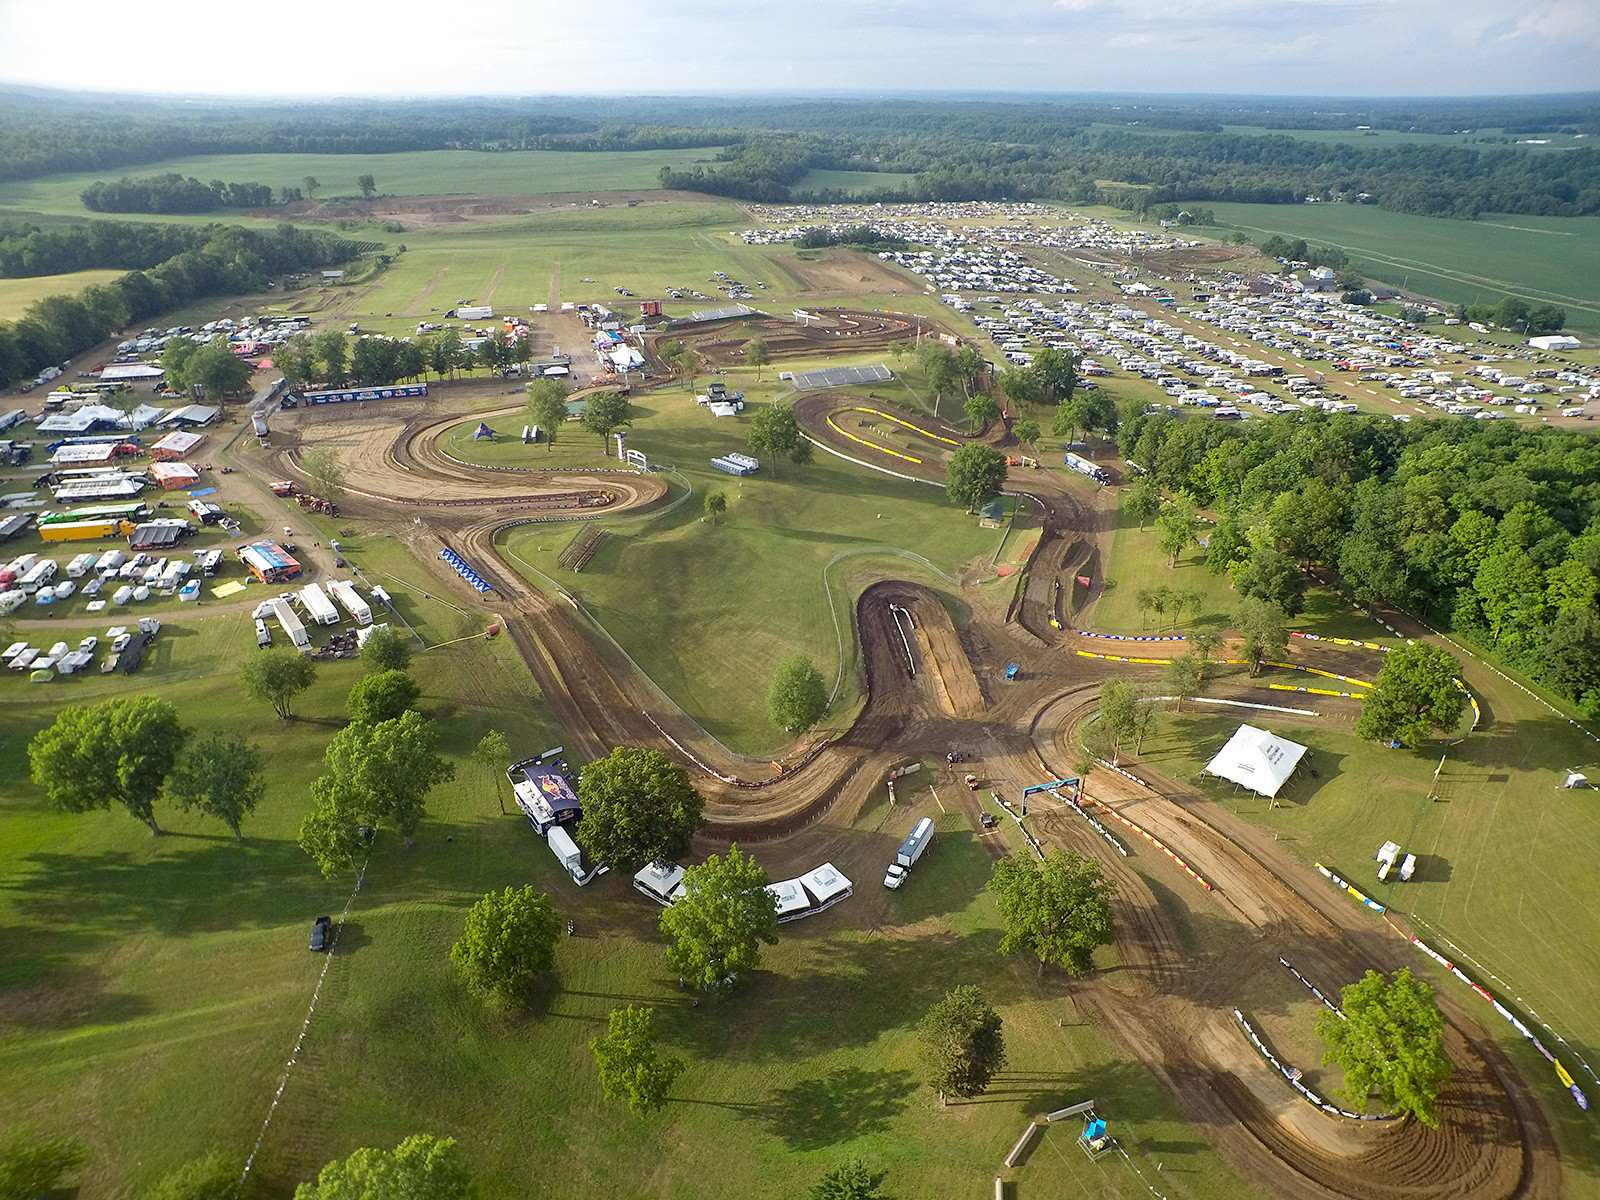 There it is, a little bit of moto heaven on Friday night before Saturday's pro action. Those are the pro pits on the left, and public camping and night track on the right.